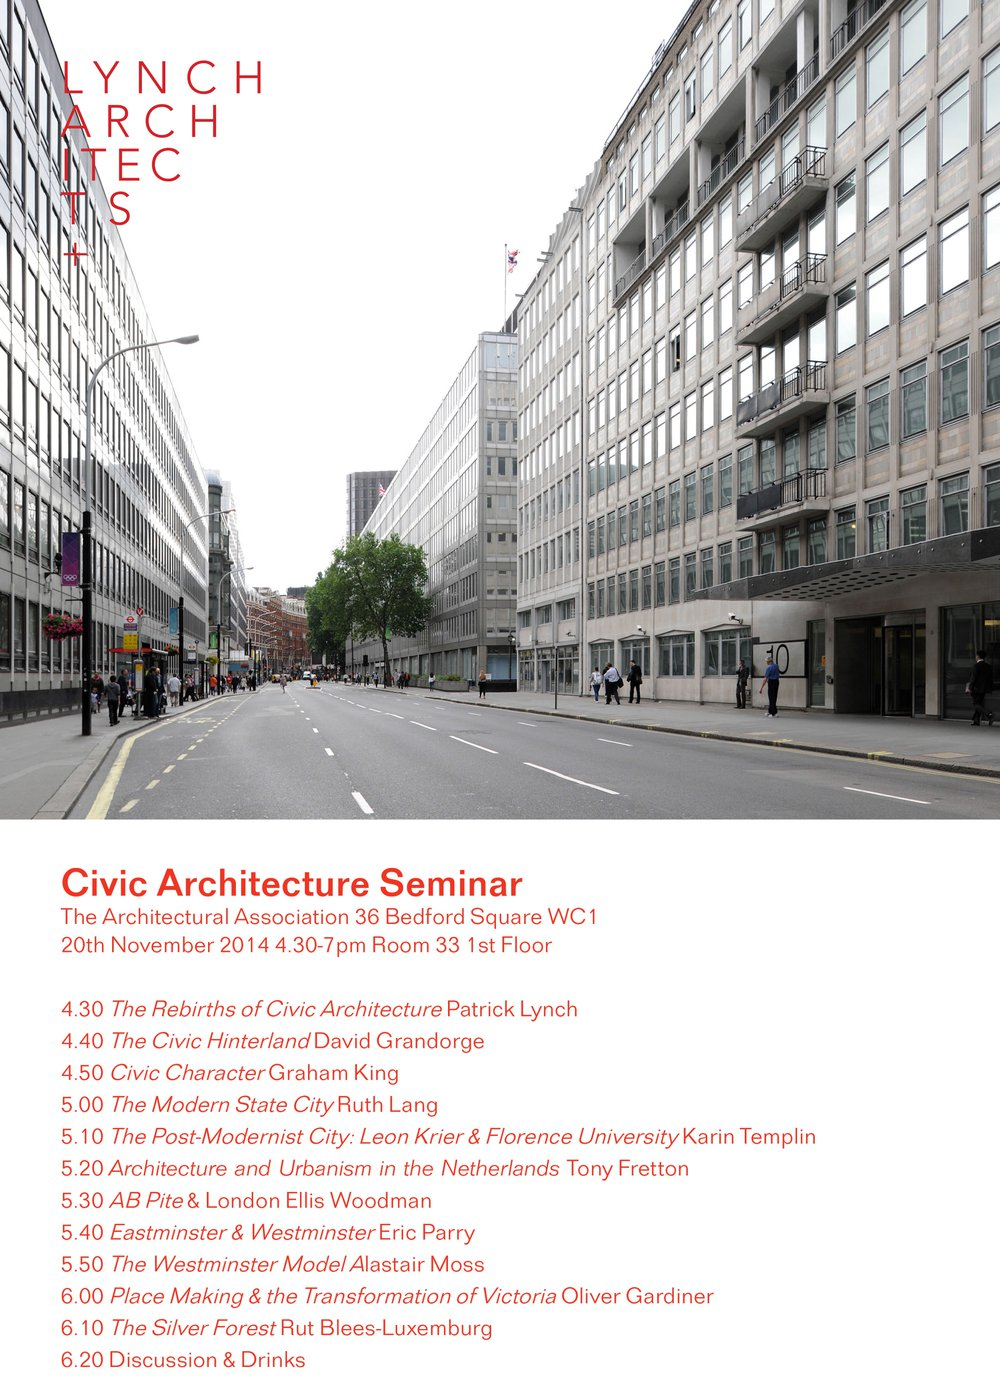 Civic_Architecture_Exhibition_CIVIC-ARCHITECTURE-SEMINAR-REVISED.jpg